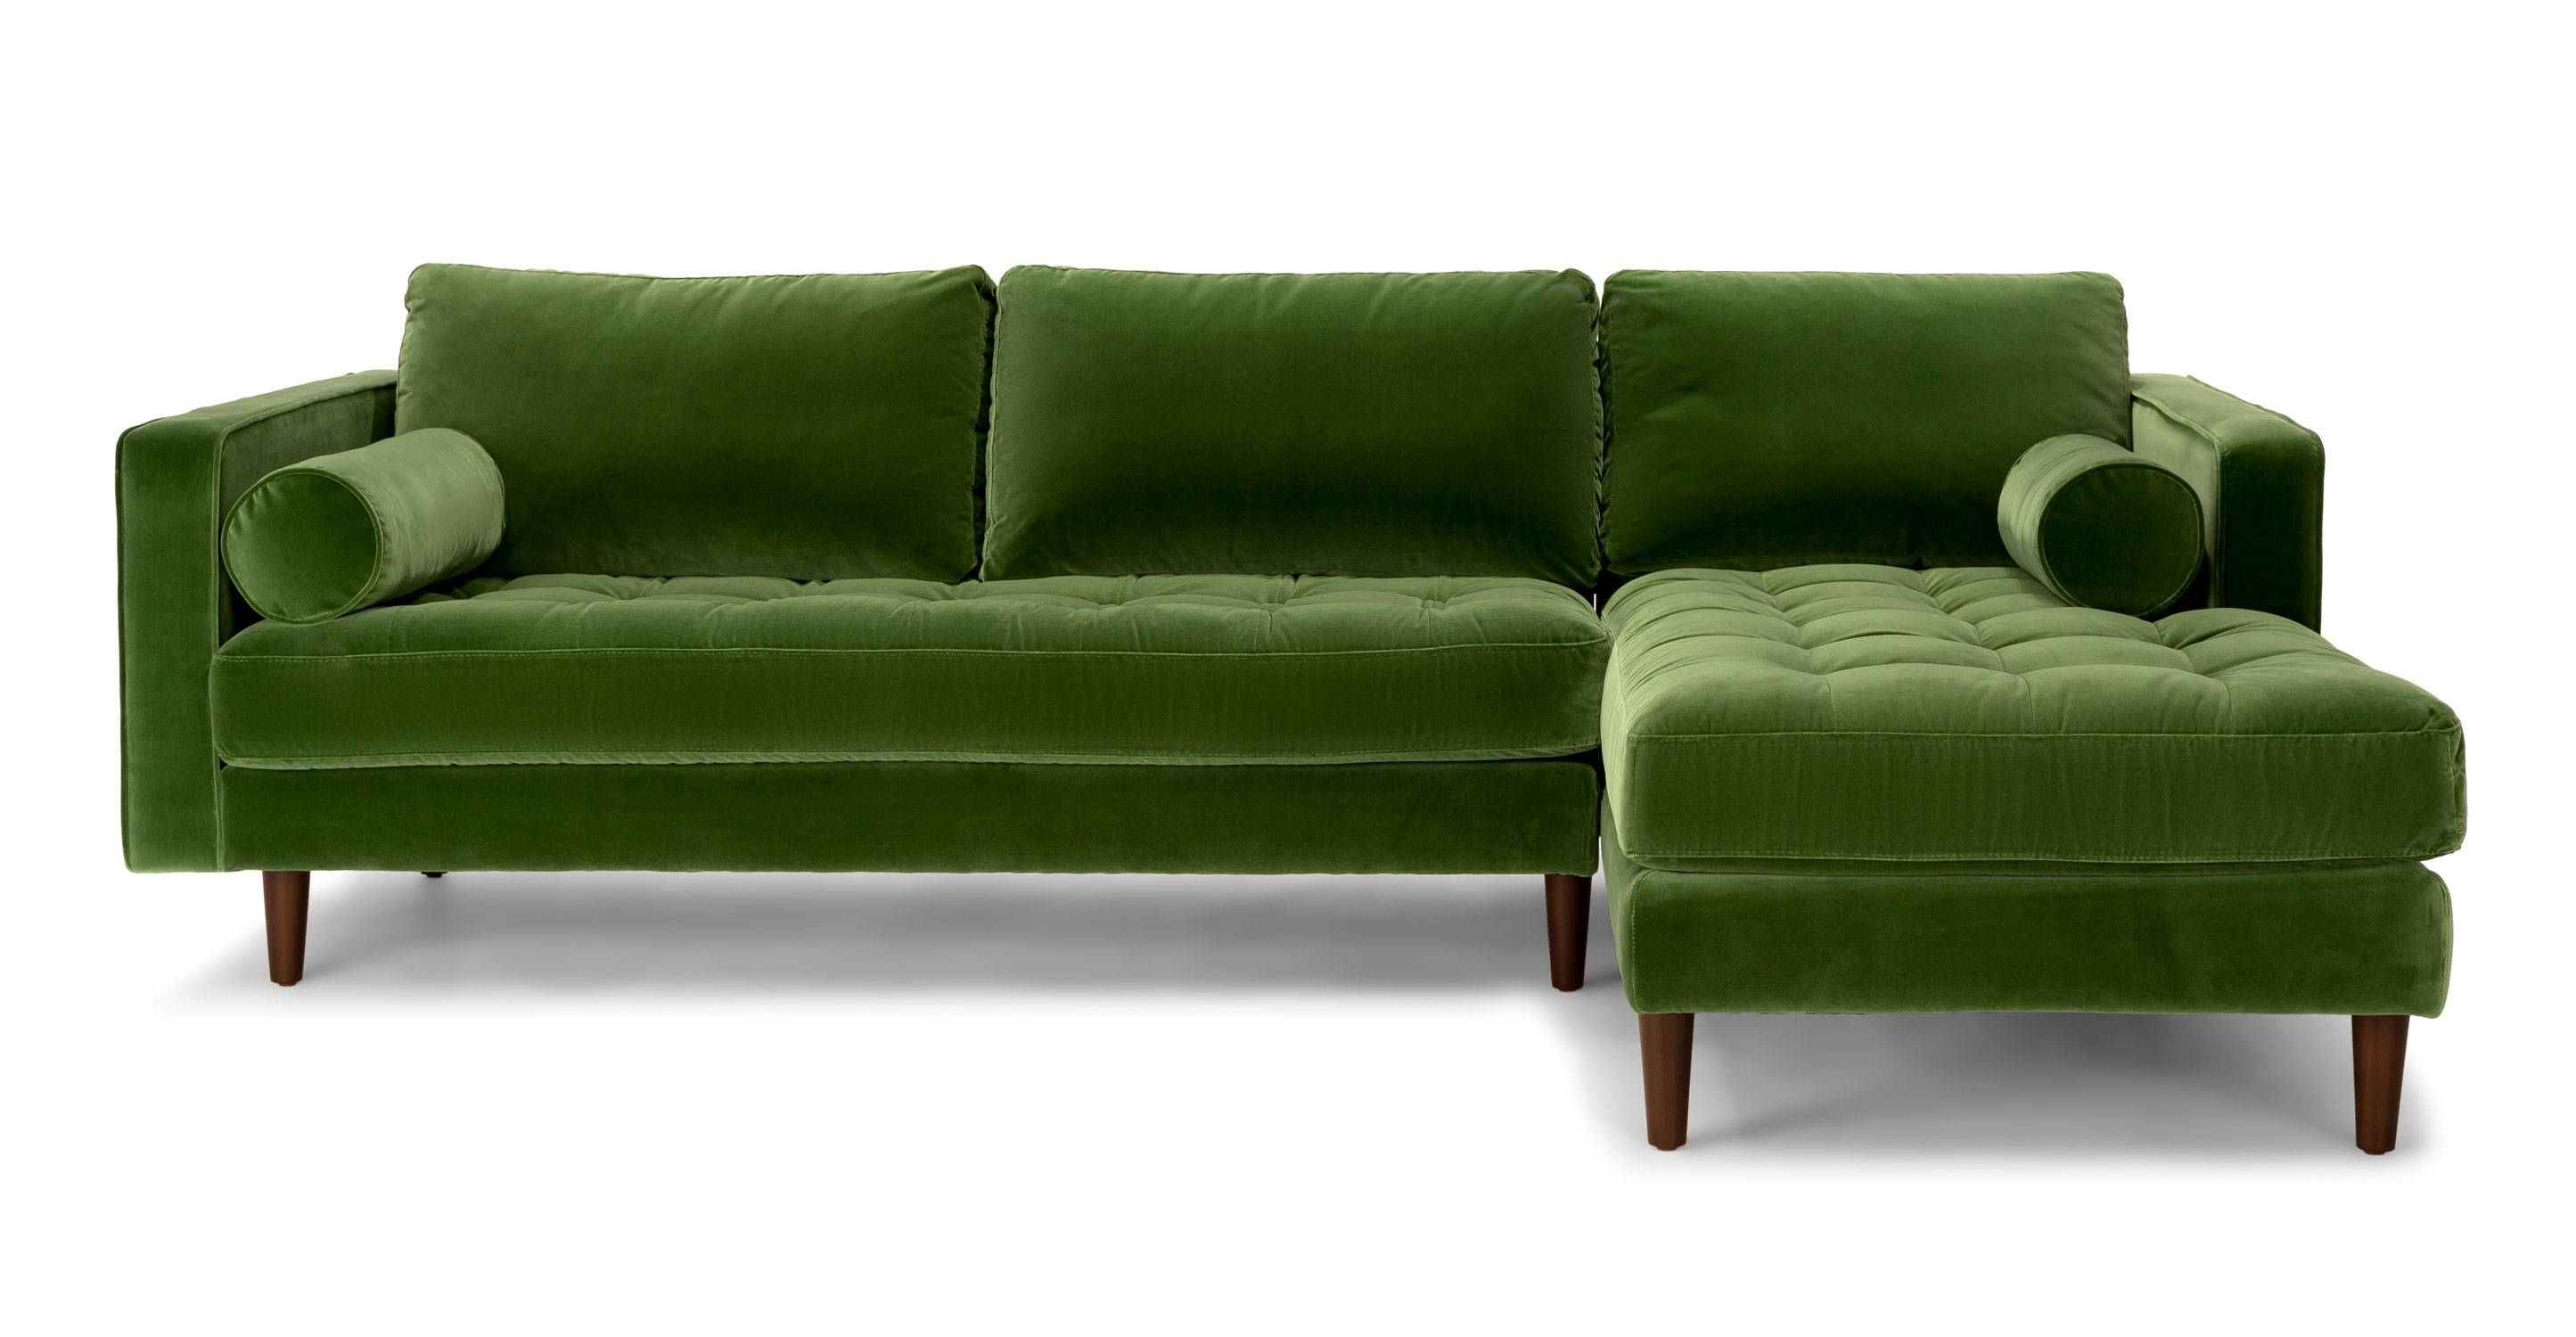 Sofas Center : Excellent Green Sectional Sofa Photos Inspirations within Green Sectional Sofa With Chaise (Image 24 of 30)